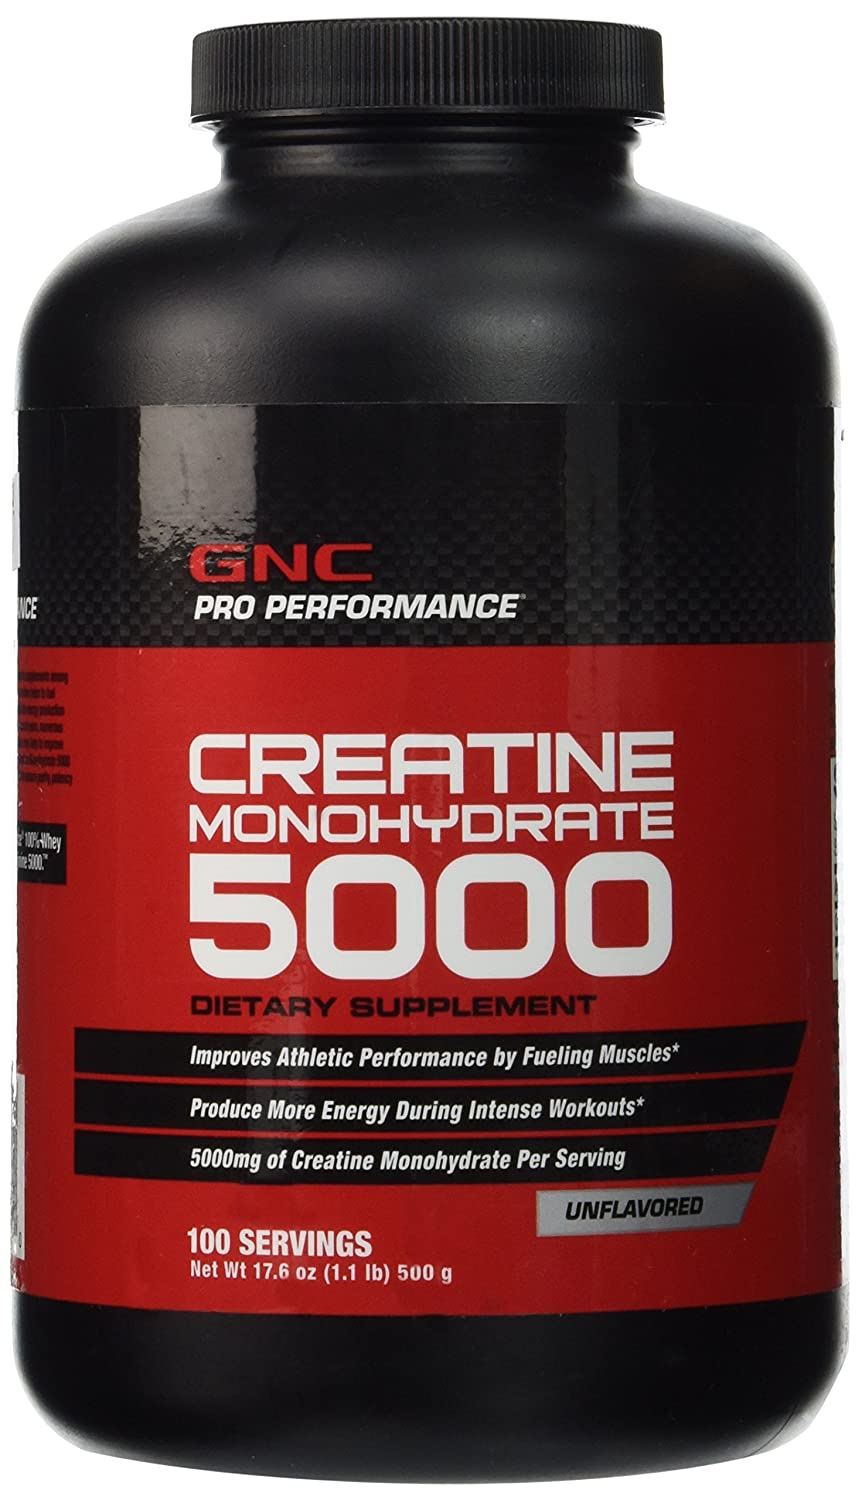 Brands of creatine